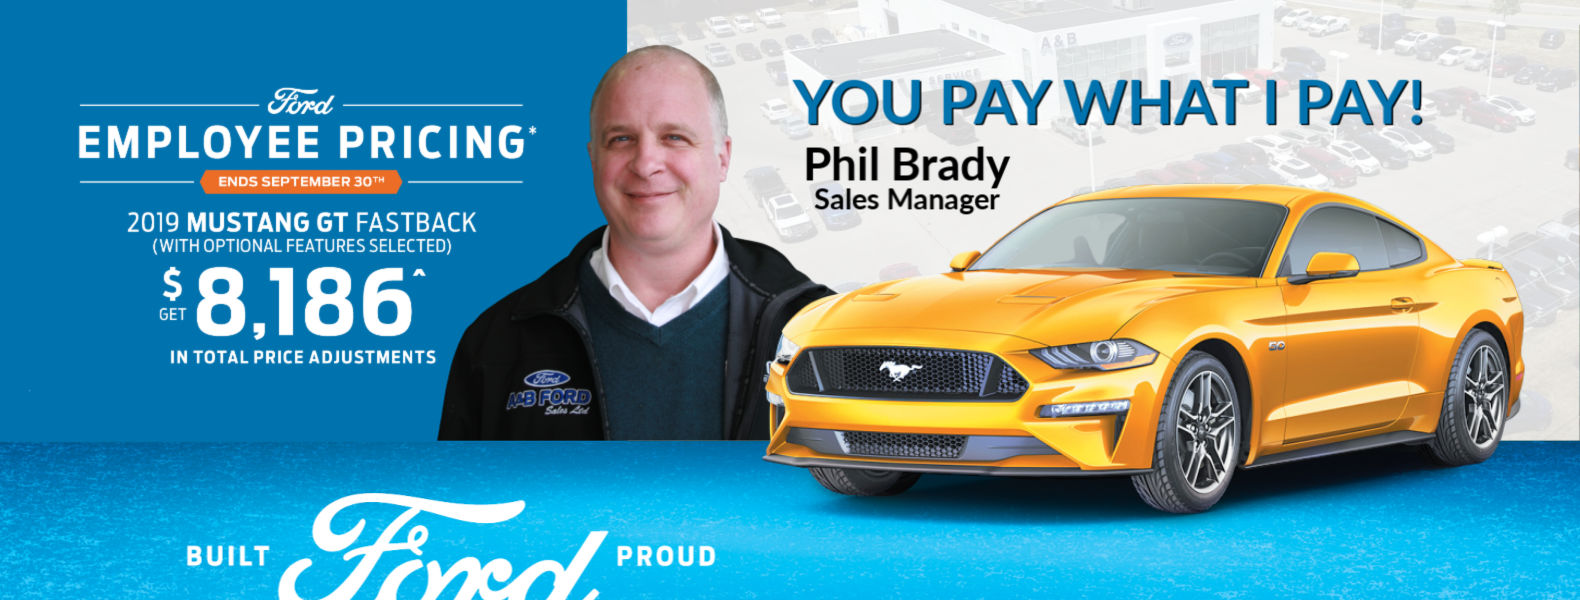 ford employe pricing